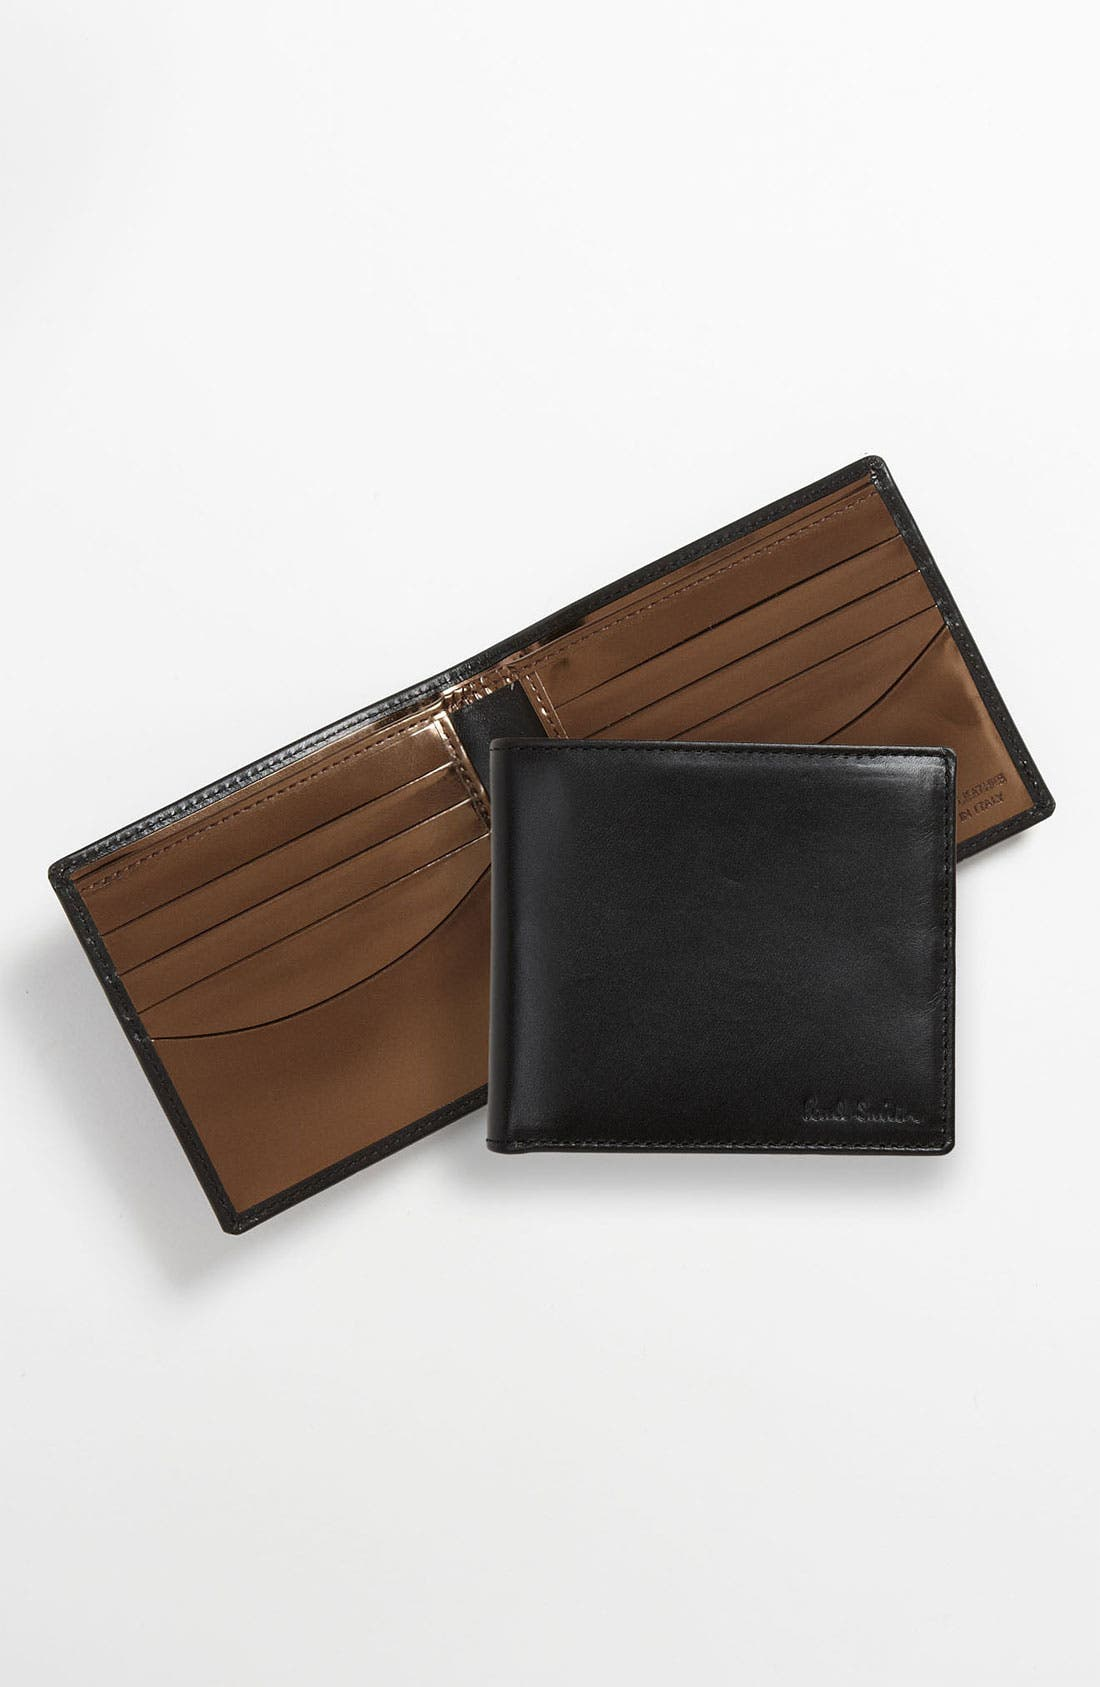 Main Image - Paul Smith Accessories Calfskin Leather Billfold Wallet